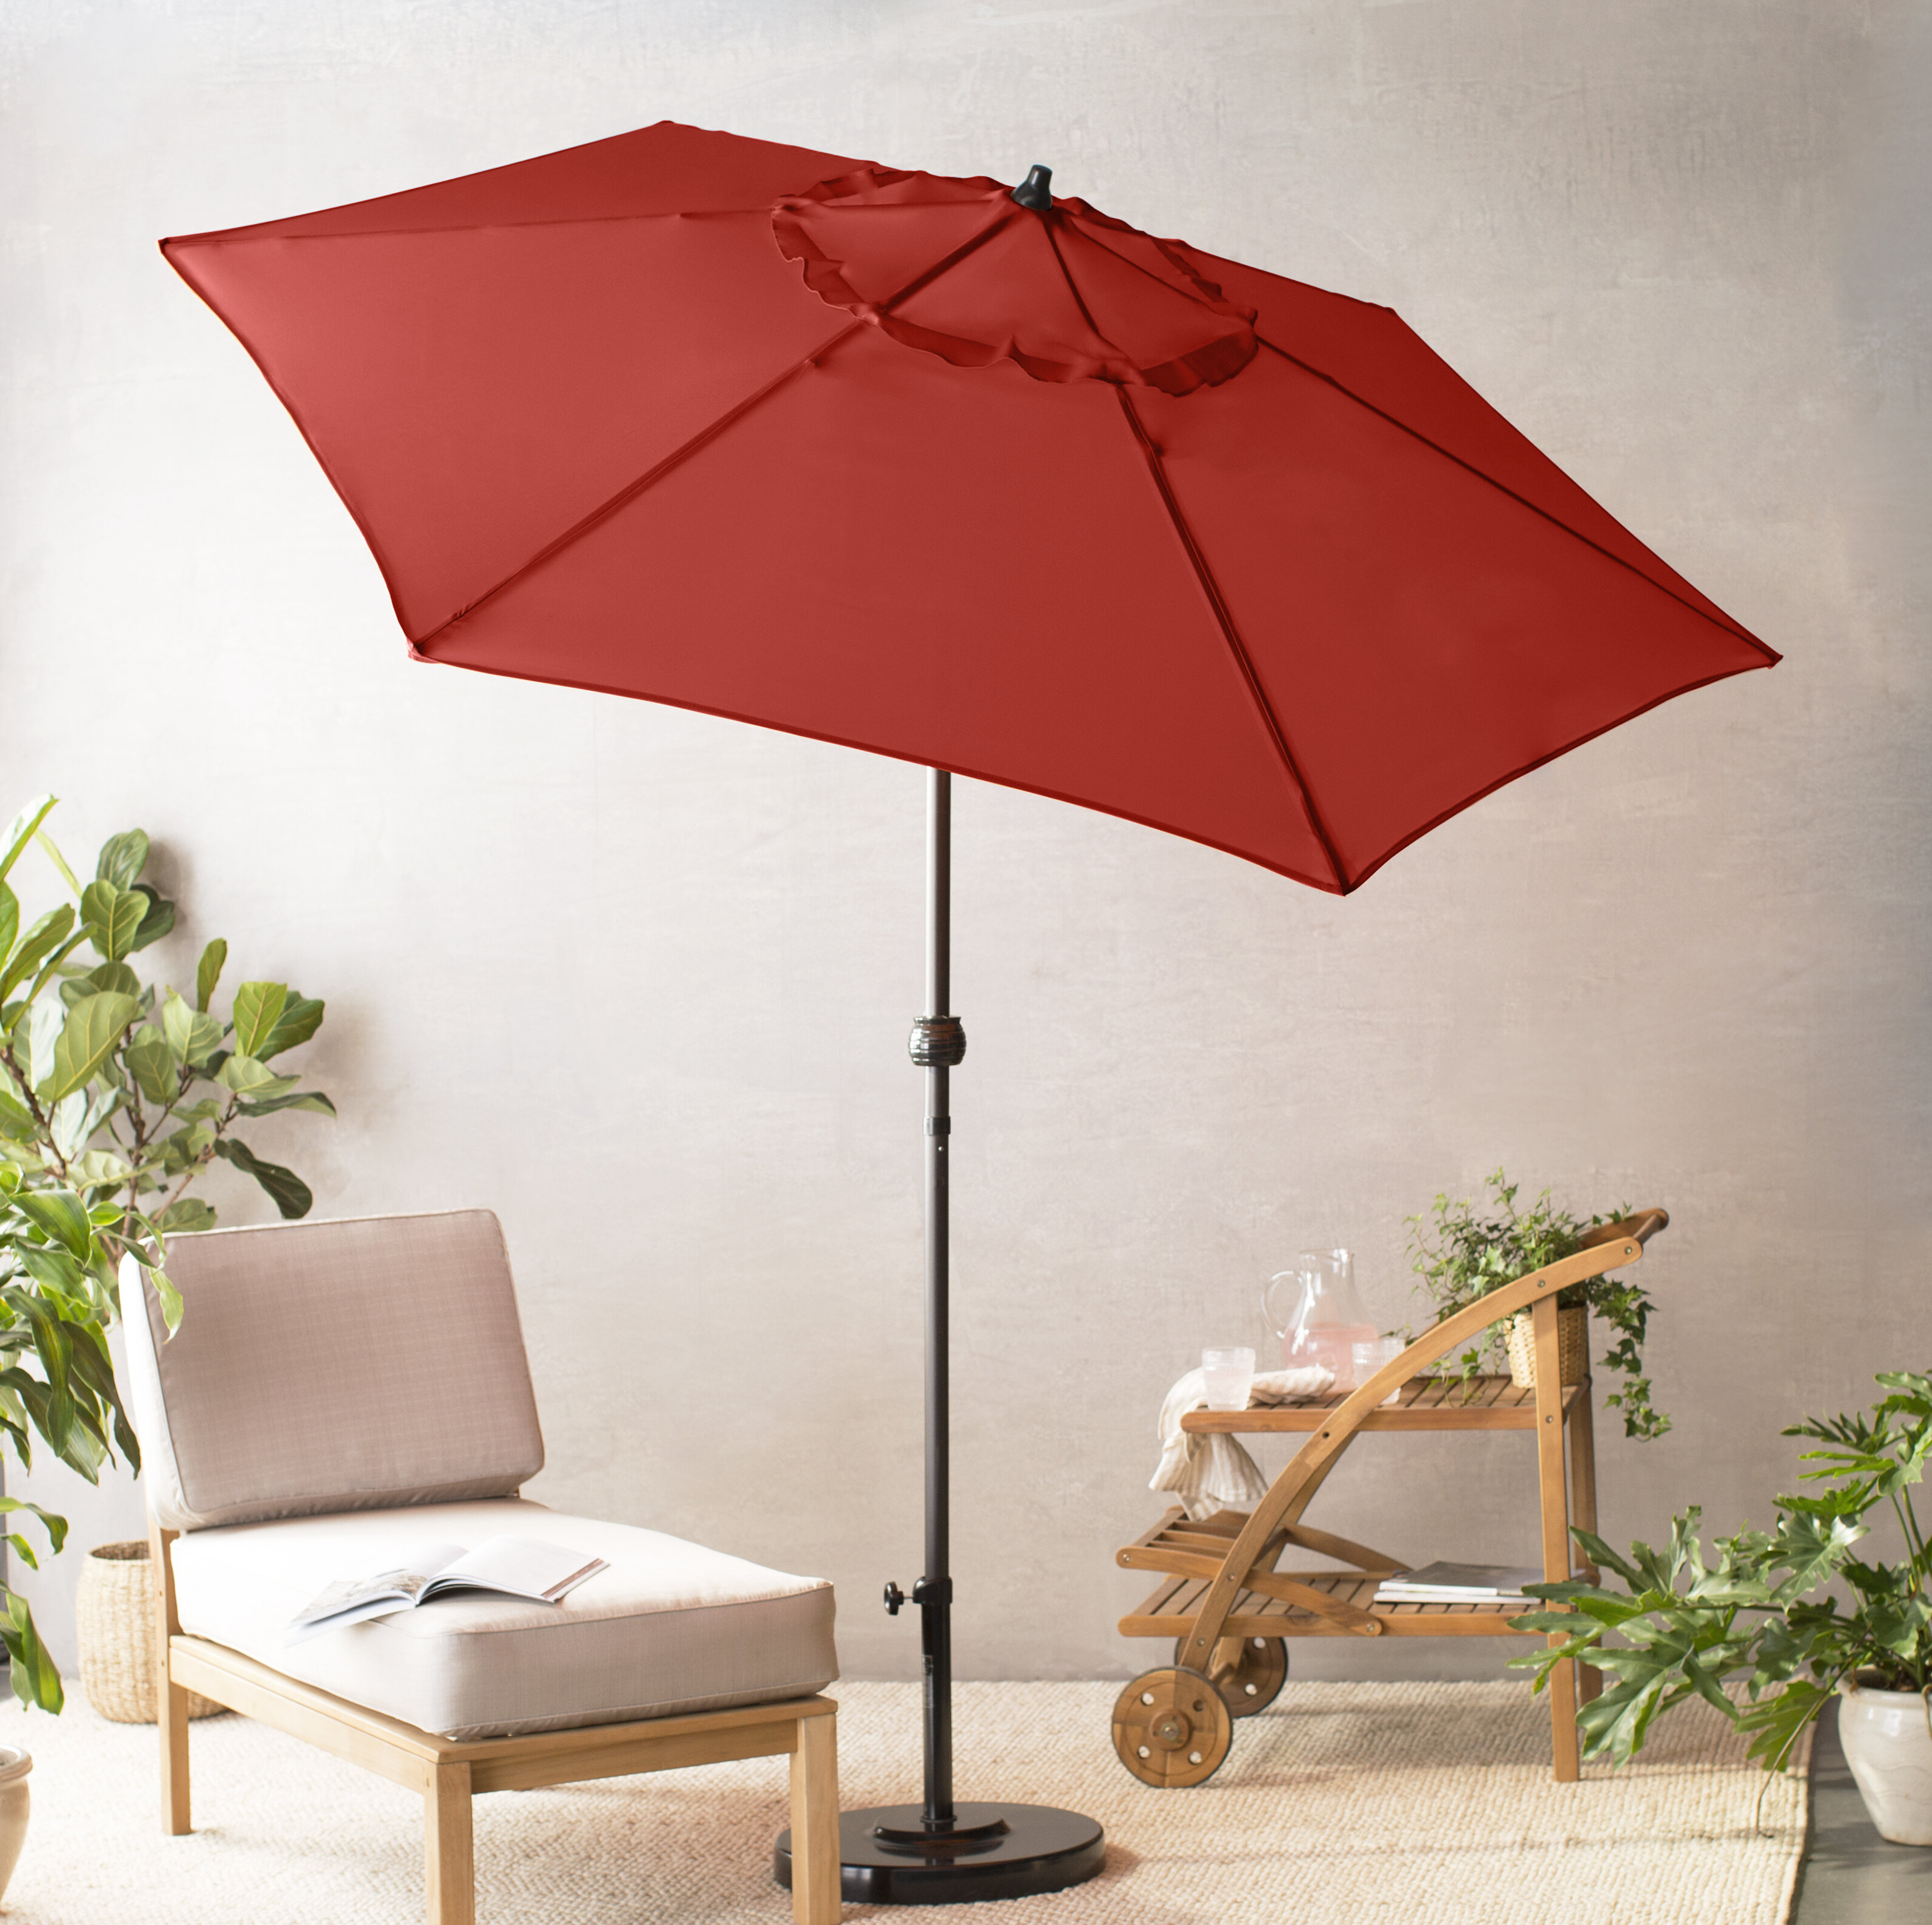 Well Known Bradford Patio Market Umbrellas Intended For Kearney 9' Market Umbrella (View 17 of 20)